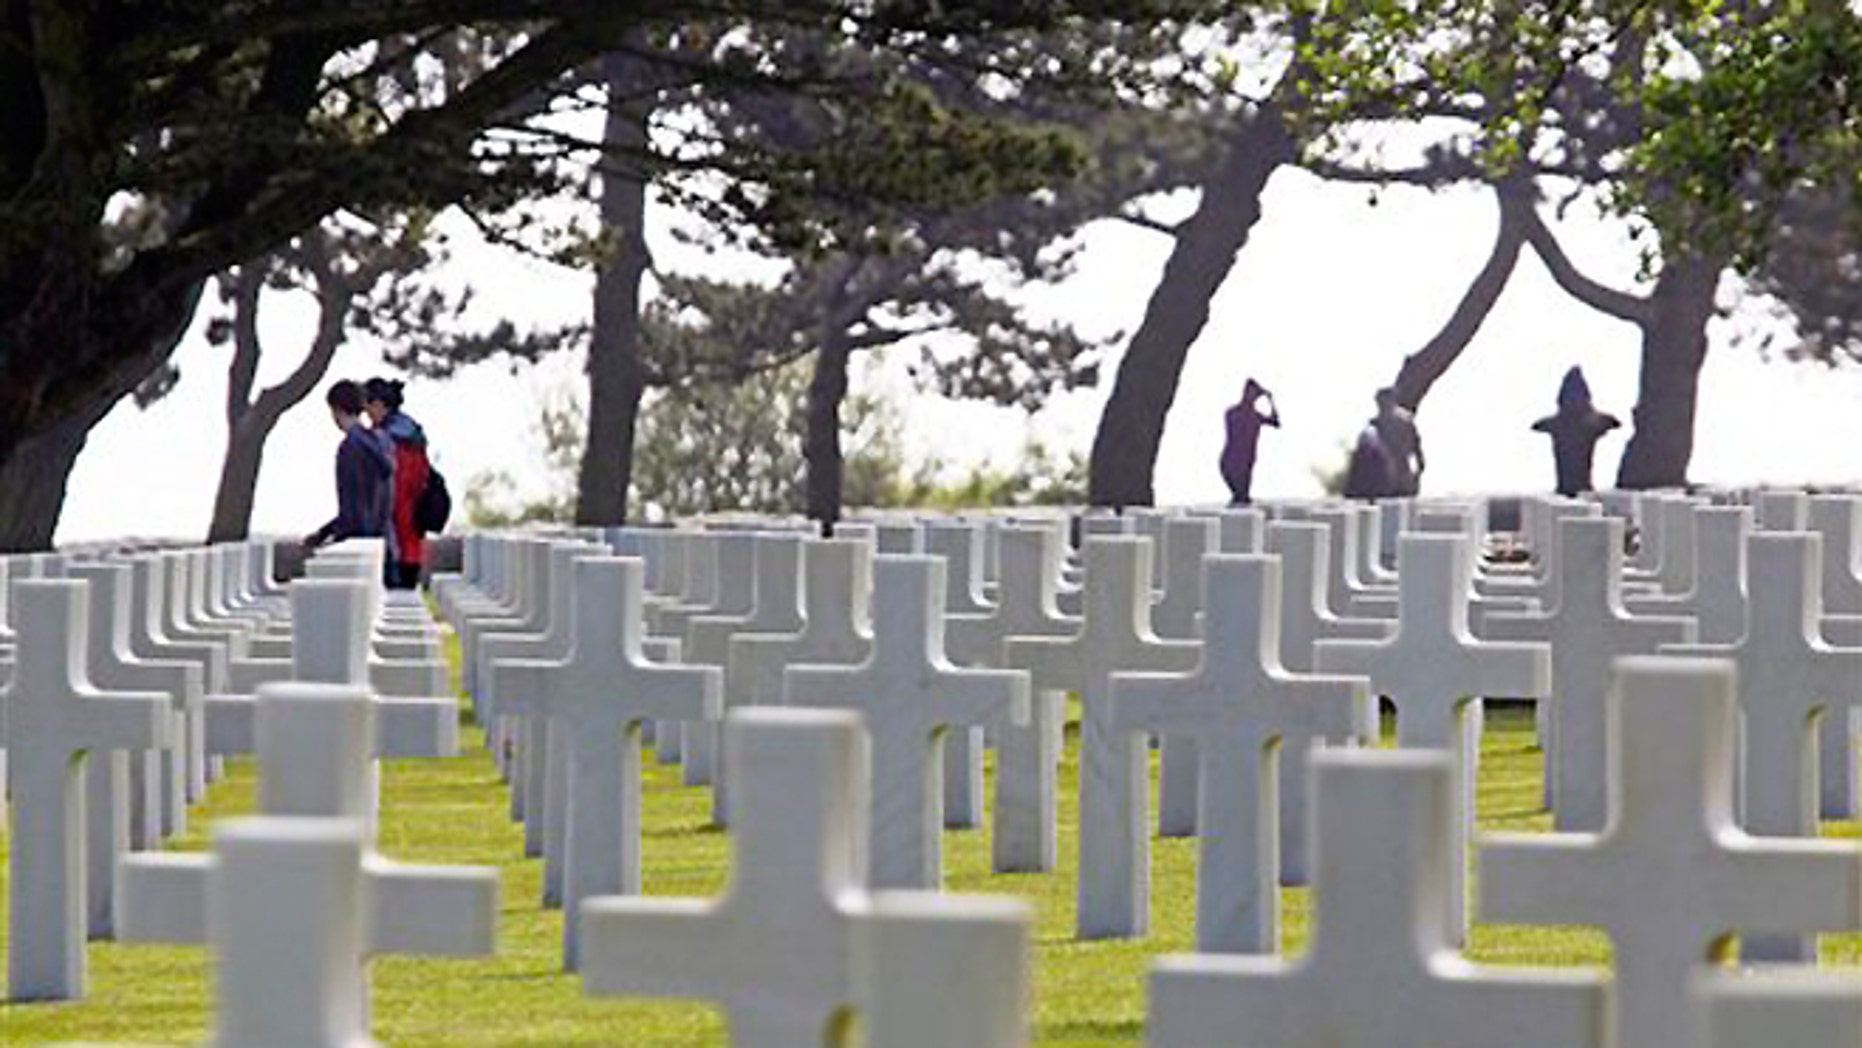 June 6, 2013: Visitors walk among the graves at the Colleville American military cemetery, in Colleville sur Mer, western France on the day of the commemoration of the 69th anniversary of the D-Day.